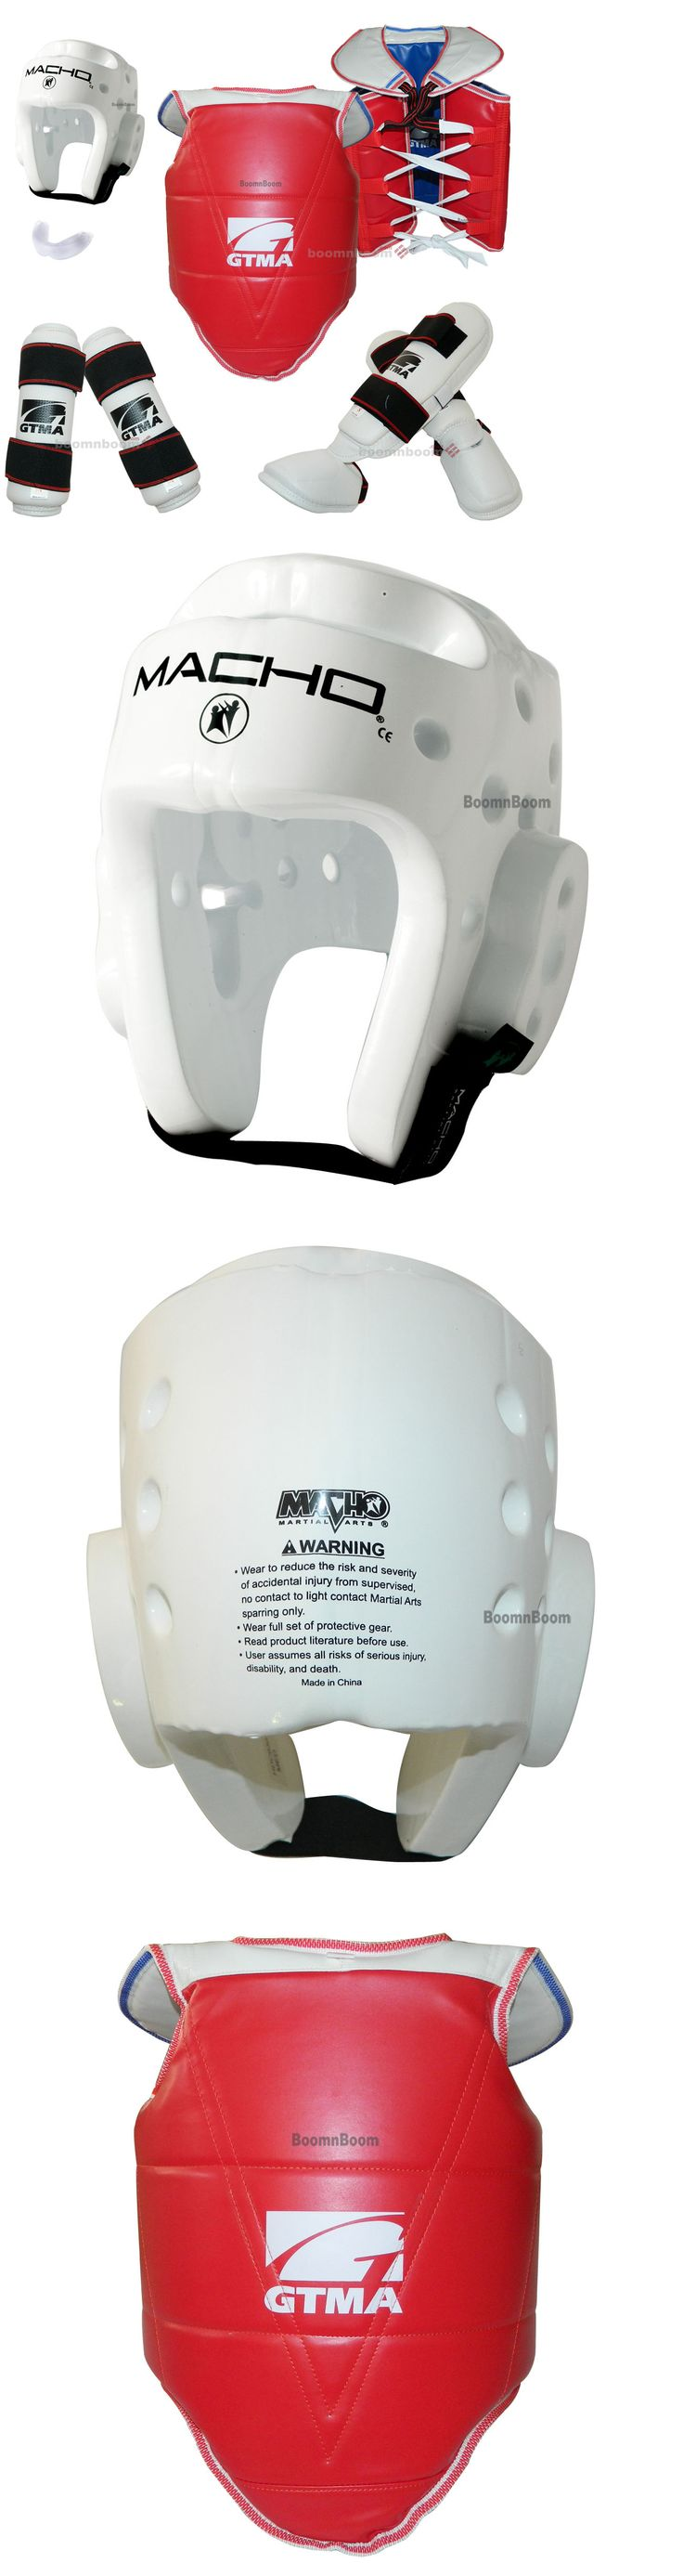 Head Gear 179780: New Complete Taekwondo Sparring Gear Set 7Pc Deluxe Protector Karate Guard Set BUY IT NOW ONLY: $86.99